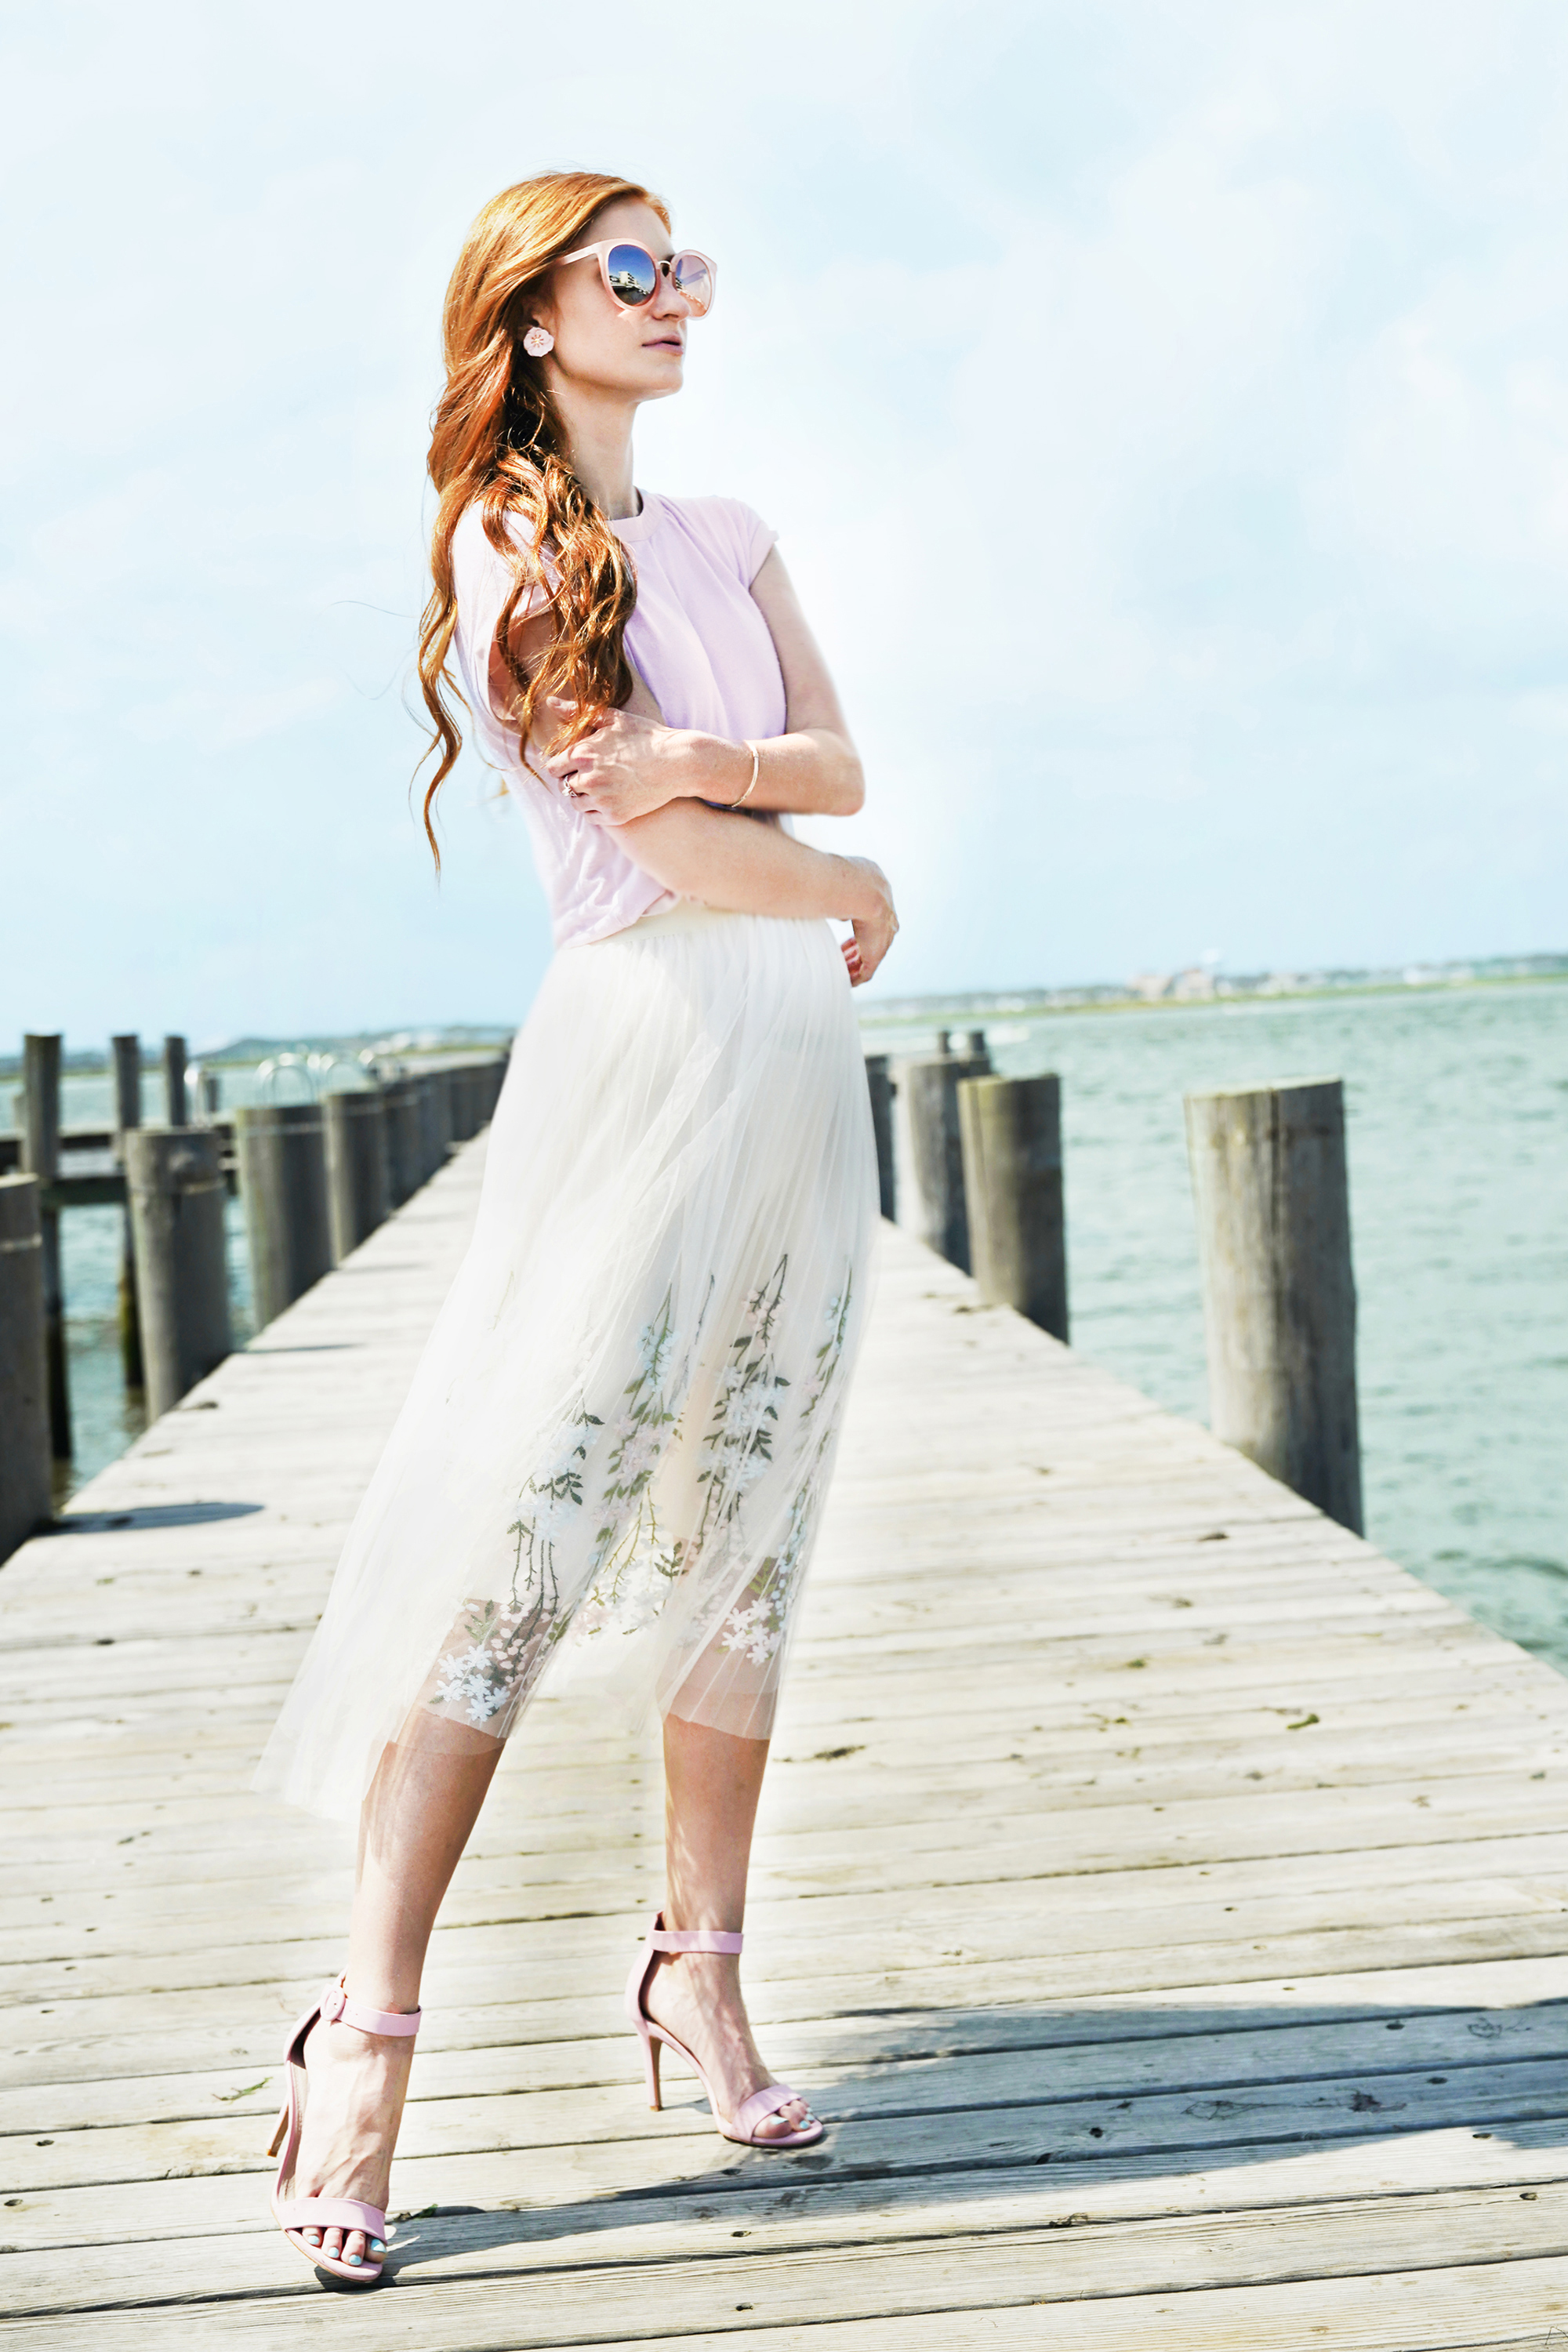 Erin Leigh She's red haute Romantic look hint floral standing on a dock in a pink shirt and floral ivory skirt